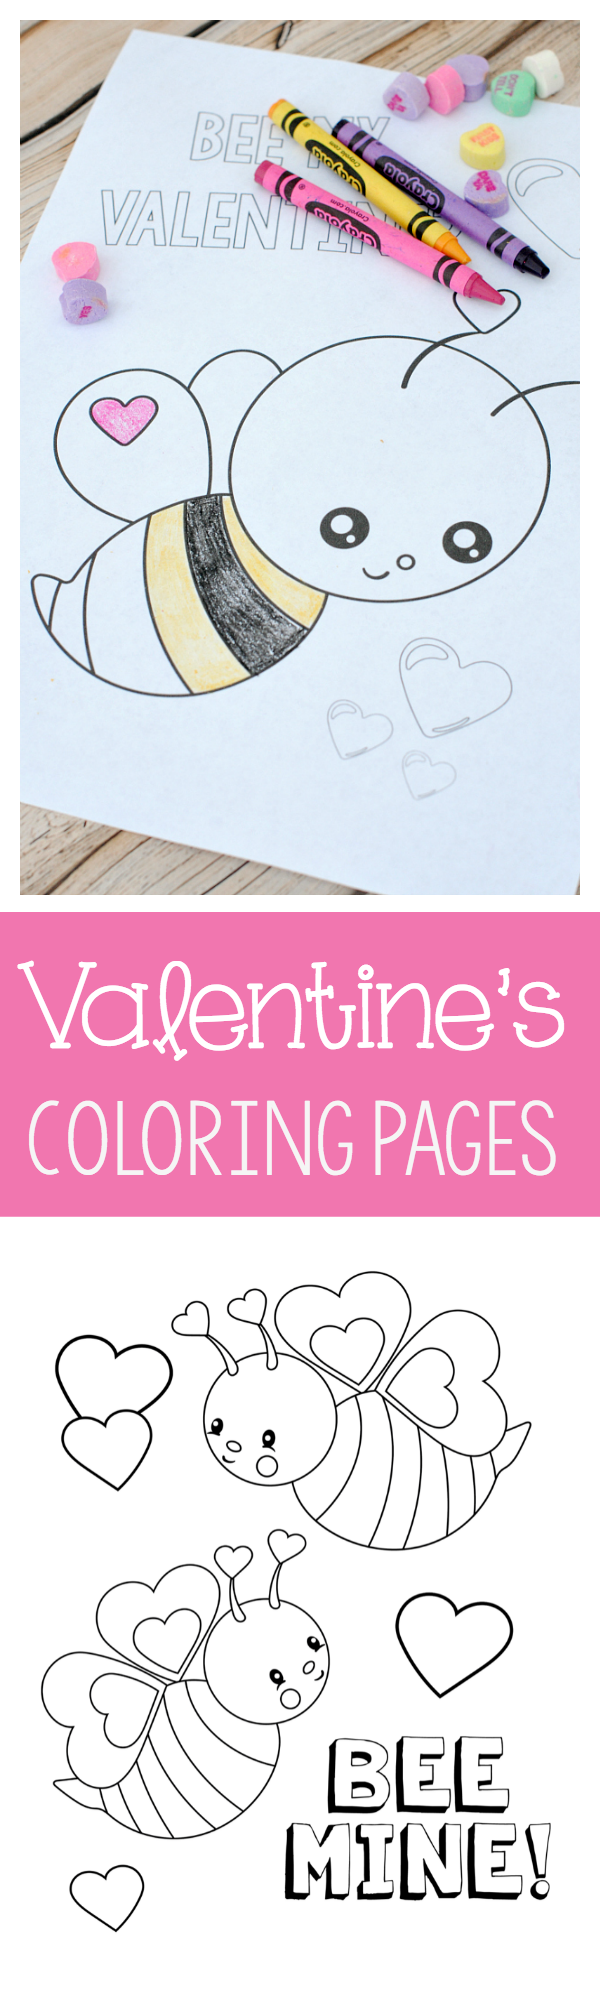 Free Printable Valentine's Coloring Pages-These cute coloring pages are perfect to print and color with the kids. Valentine's Day coloring pages are also great for kid's Valentine's Day parties. #valentinesdayparties #valentinesday #valentines #kids